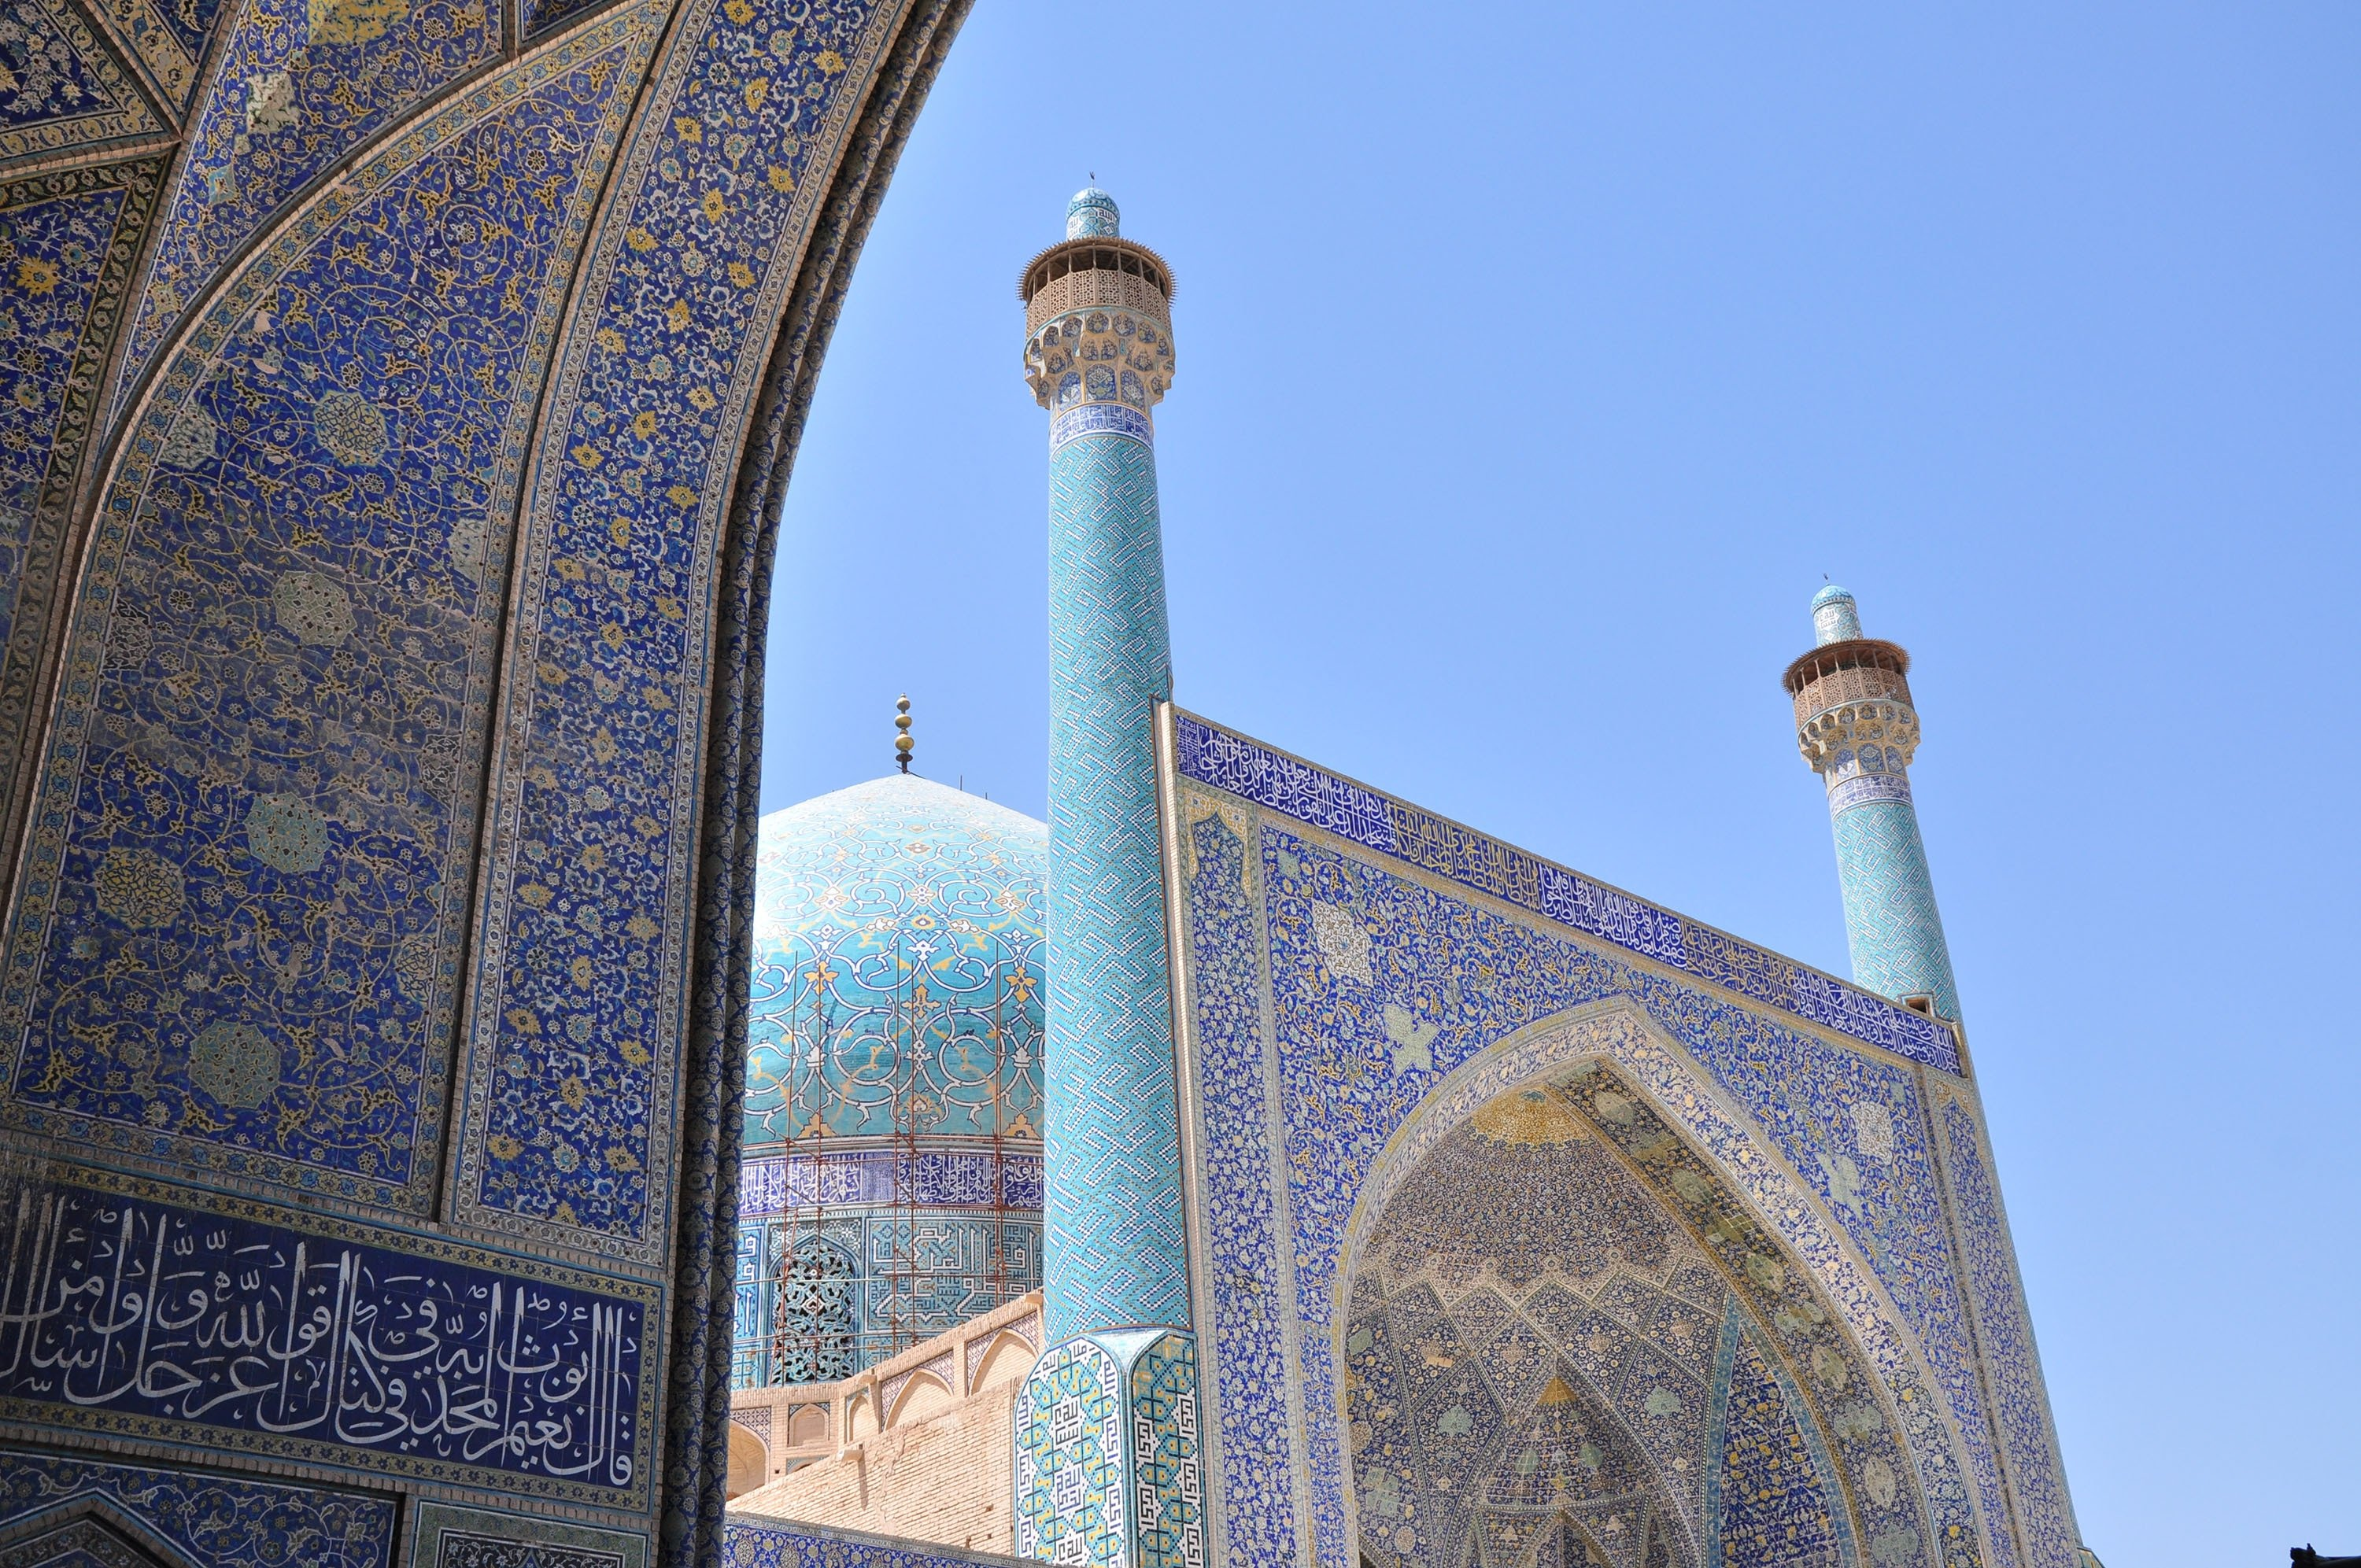 Historical engravings can be seen on the walls of the Jameh Mosque, a grand, congregational mosque whose south dome was built by Nizam al-Mulk, in Isfahan, Iran. (Shutterstock Photo)